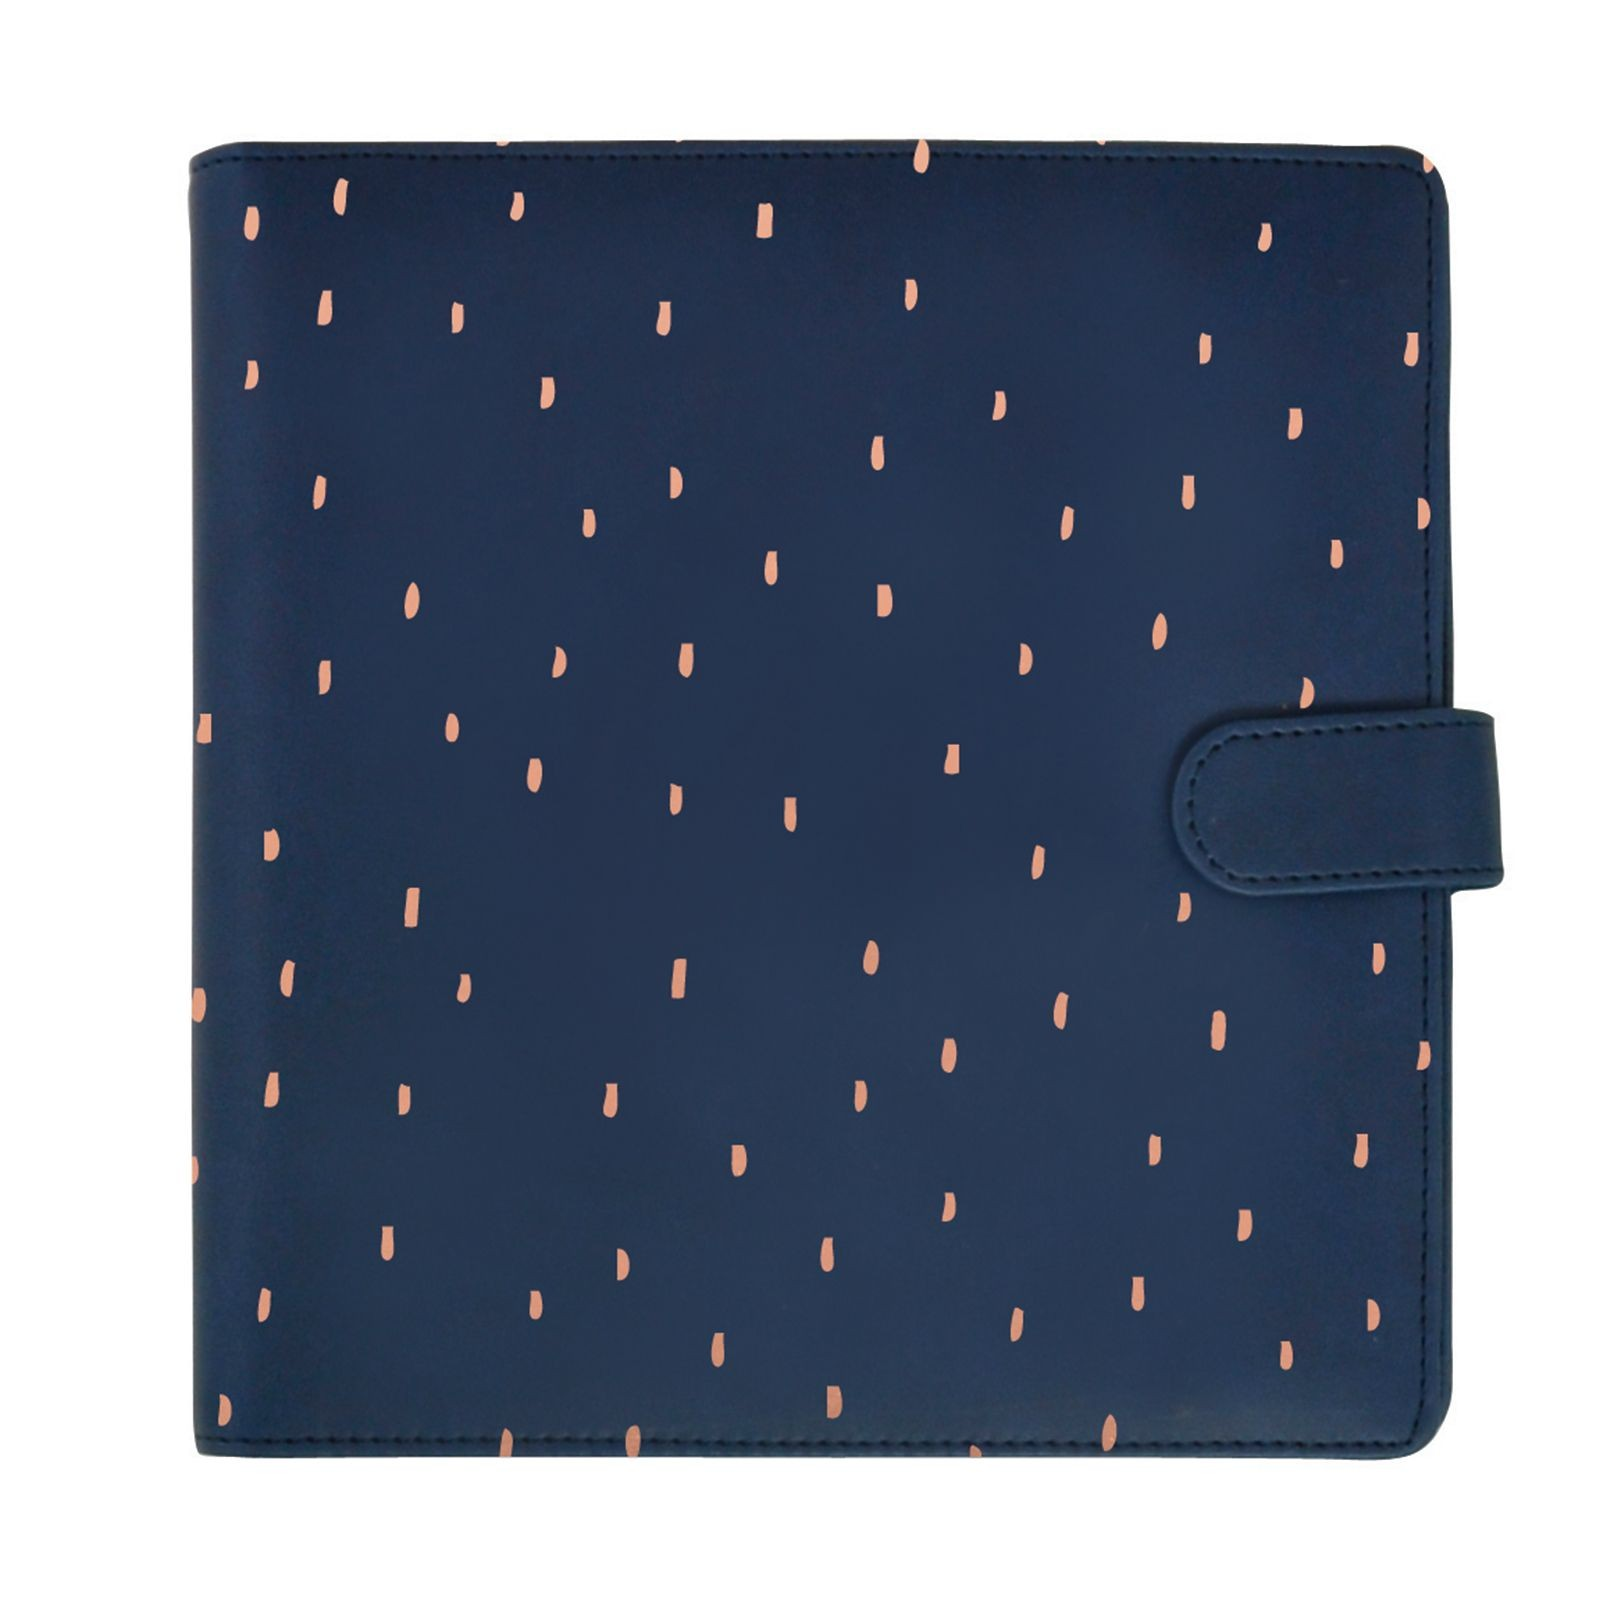 Kaisercraft planner NAVY with rose gold foil accents - (met inhoud)